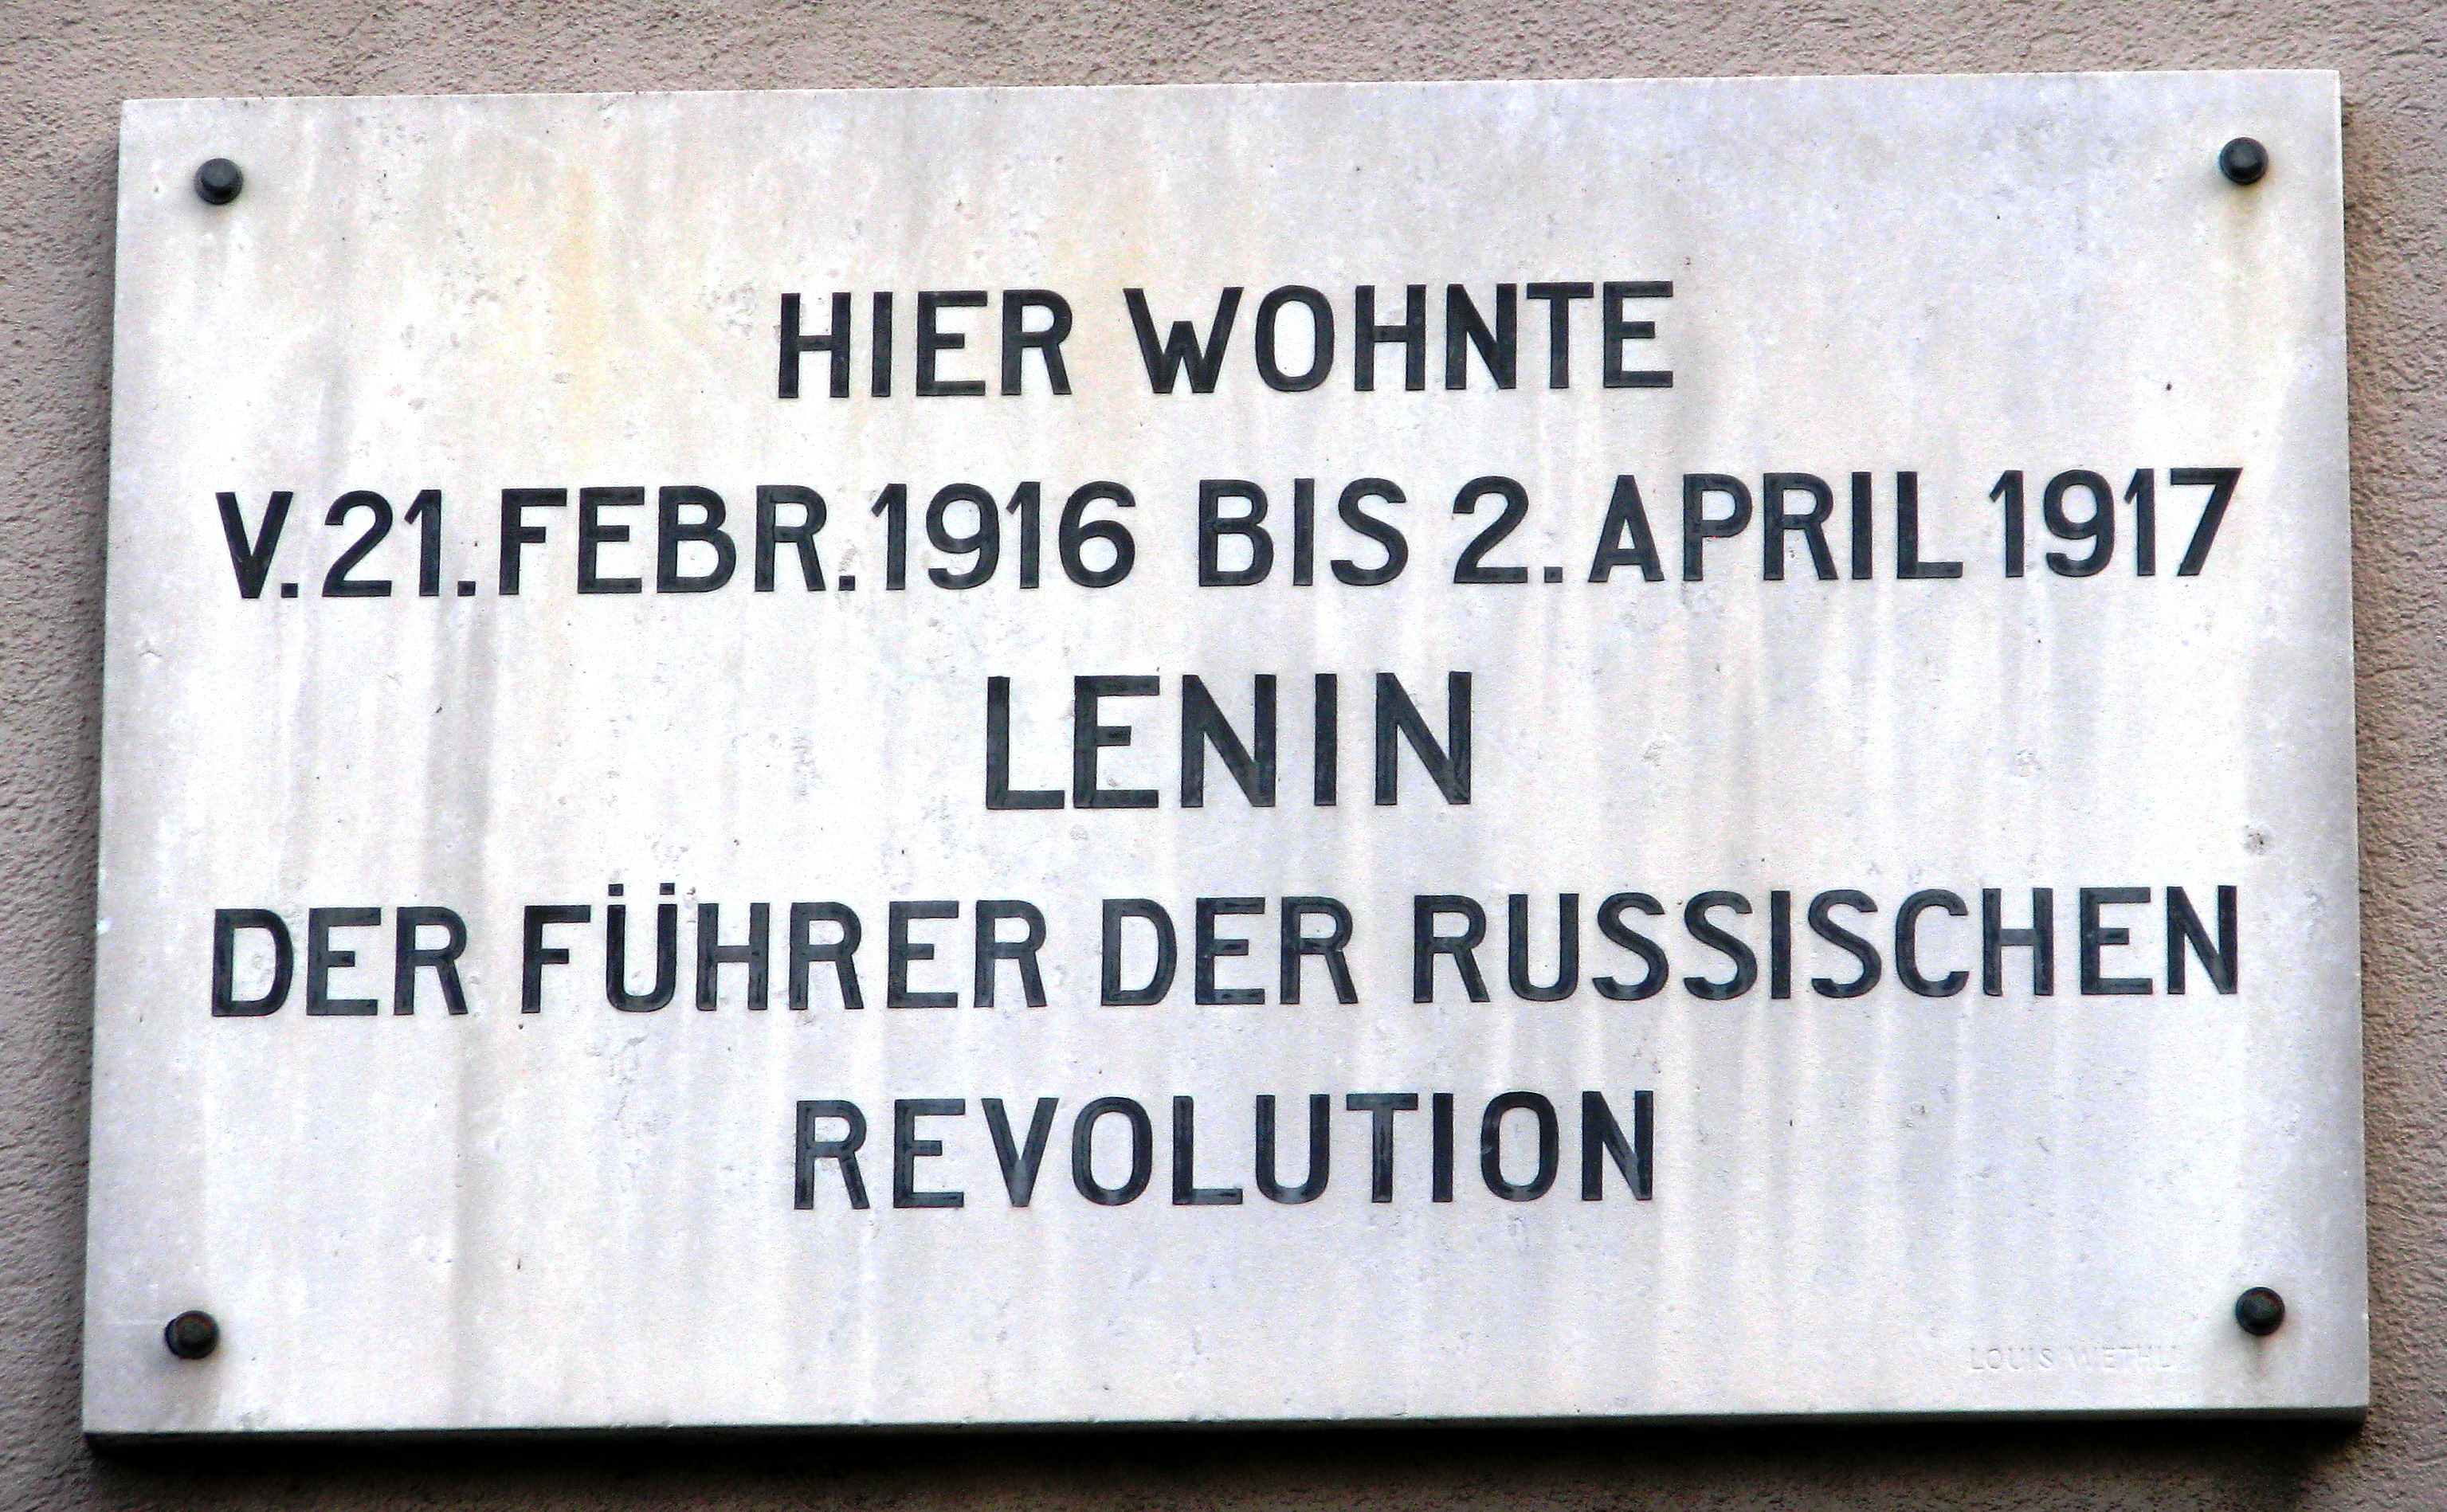 Plate in Zürich marking where Lenin lived with dates